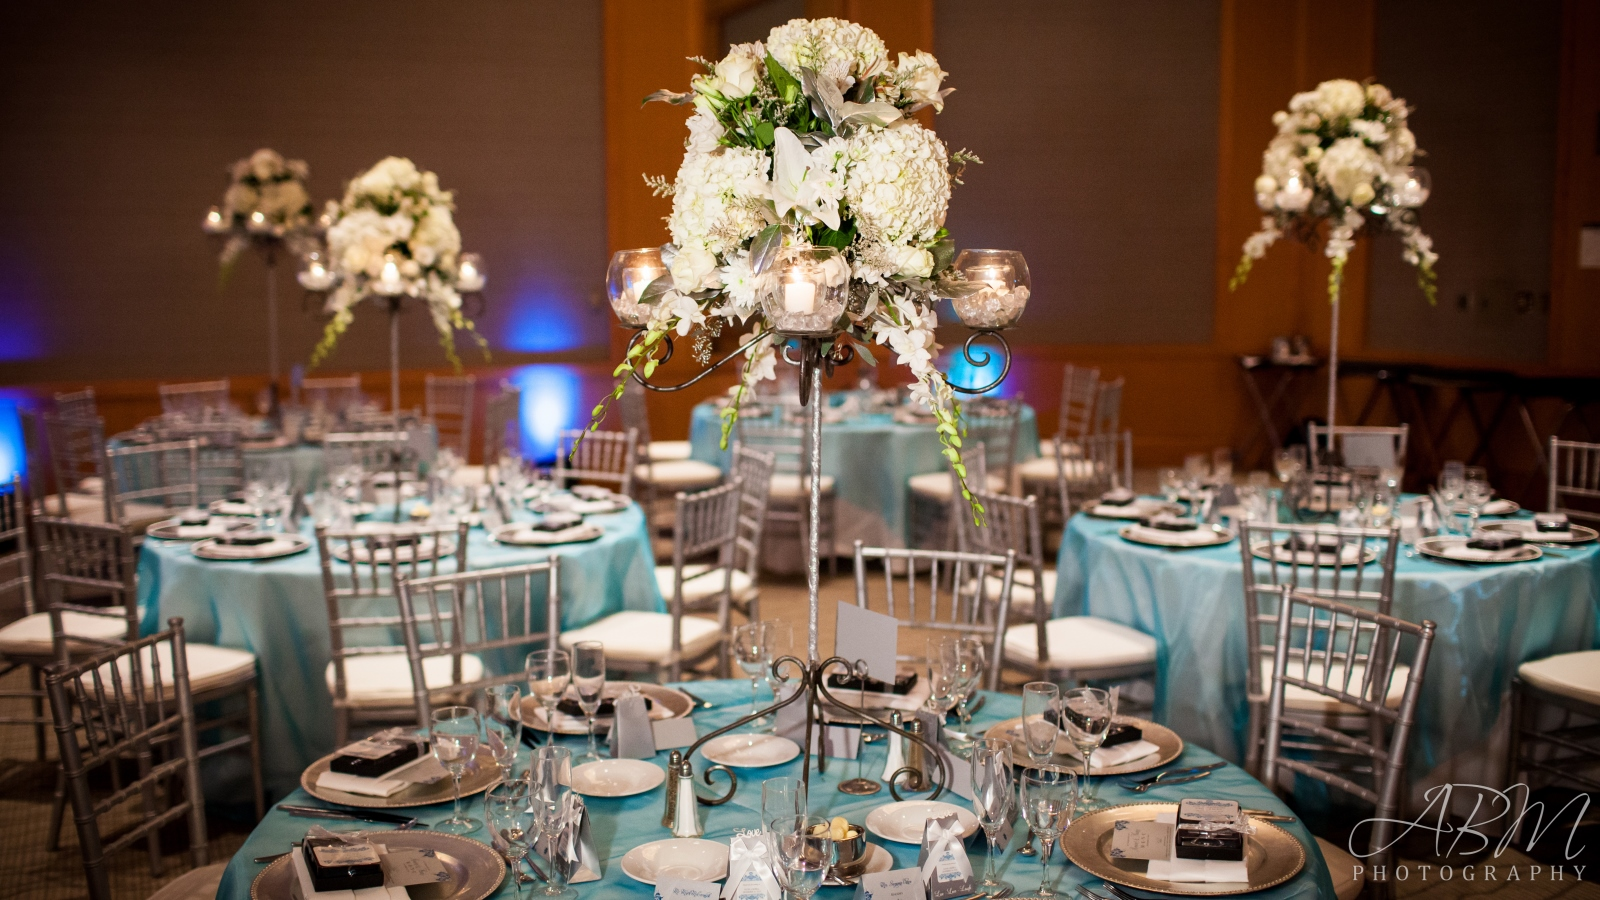 Elegant Wedding Venues In Downtown San Diego  - Tablescape